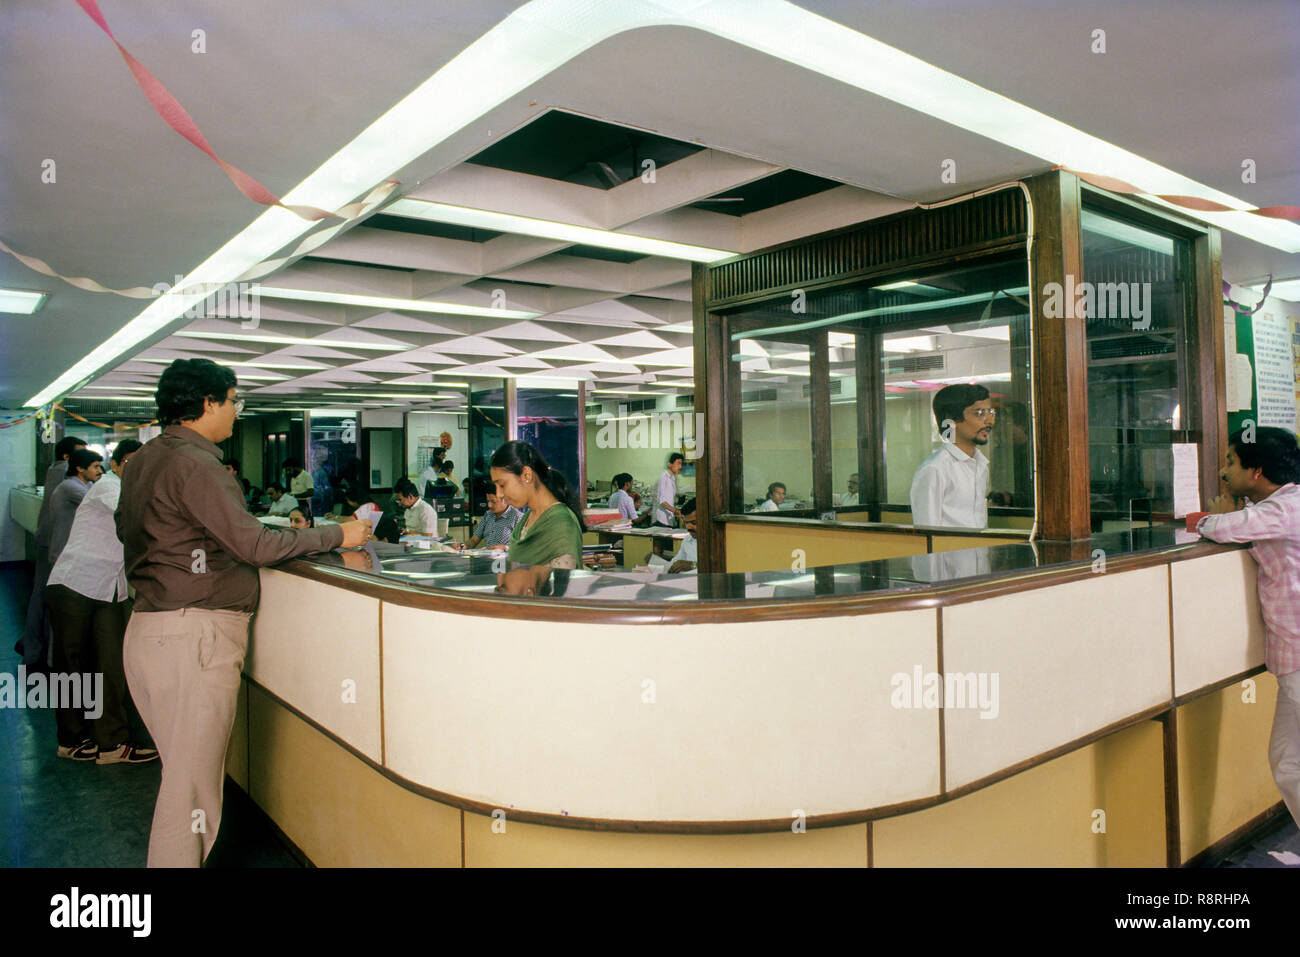 Bank Interior Counter High Resolution Stock Photography And Images Alamy